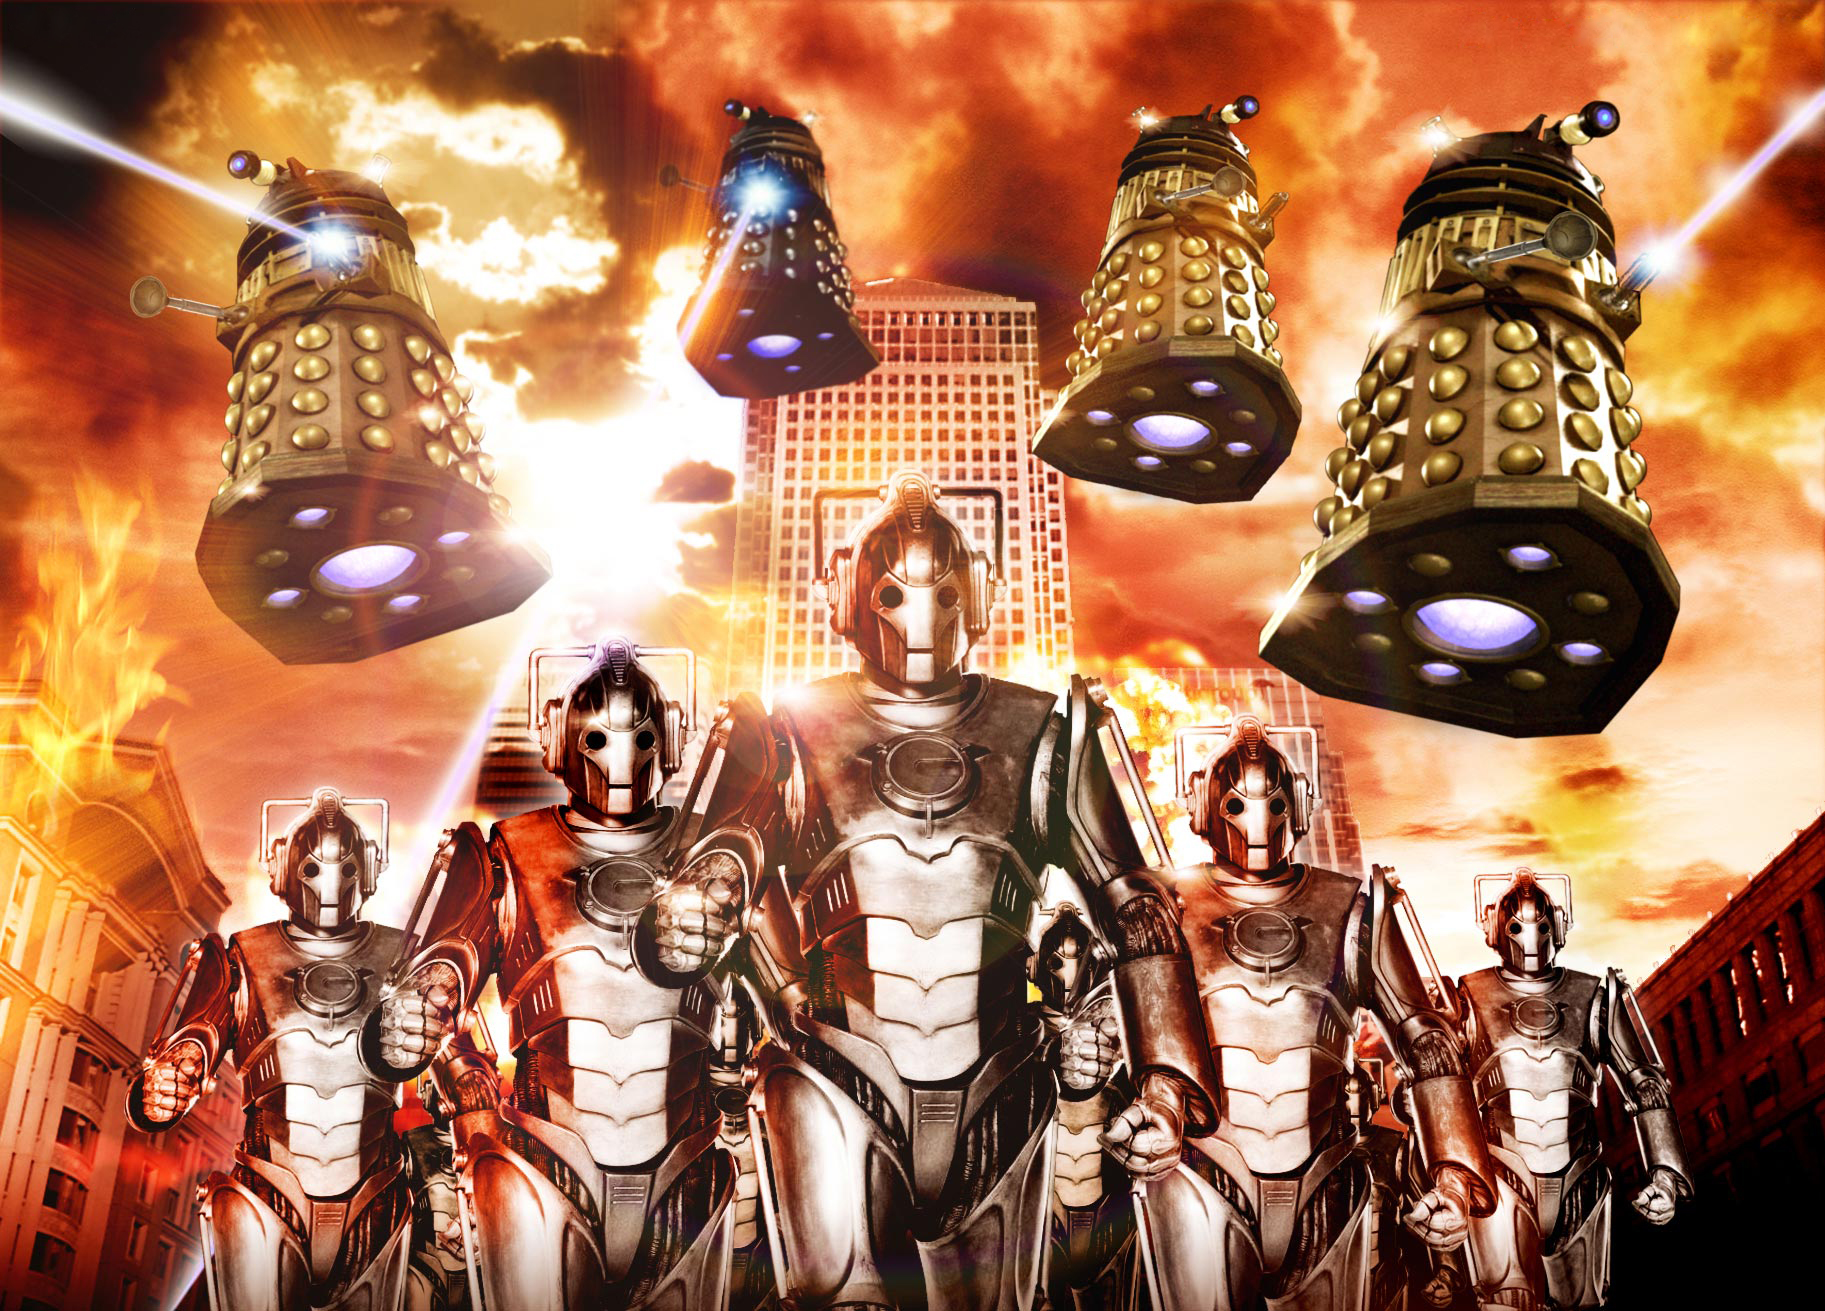 10 Cyberman (Doctor Who) HD Wallpapers | Backgrounds ...